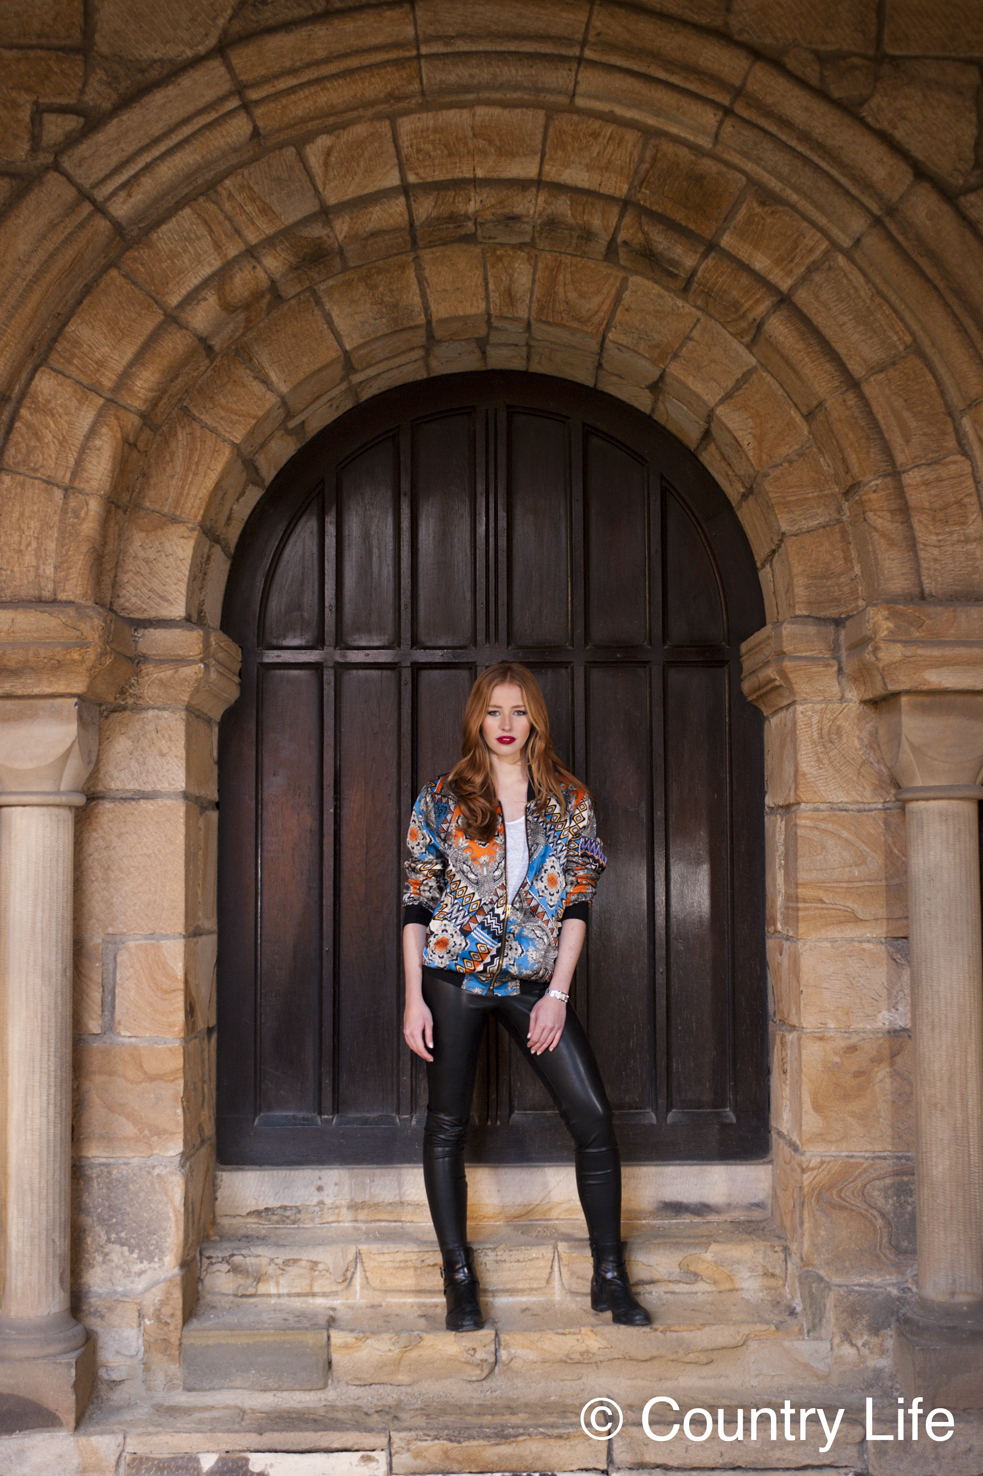 Christine Leysen for Country Life Frontispiece. Taken at Durham Cathedral. Photographer: Georgina Cranston